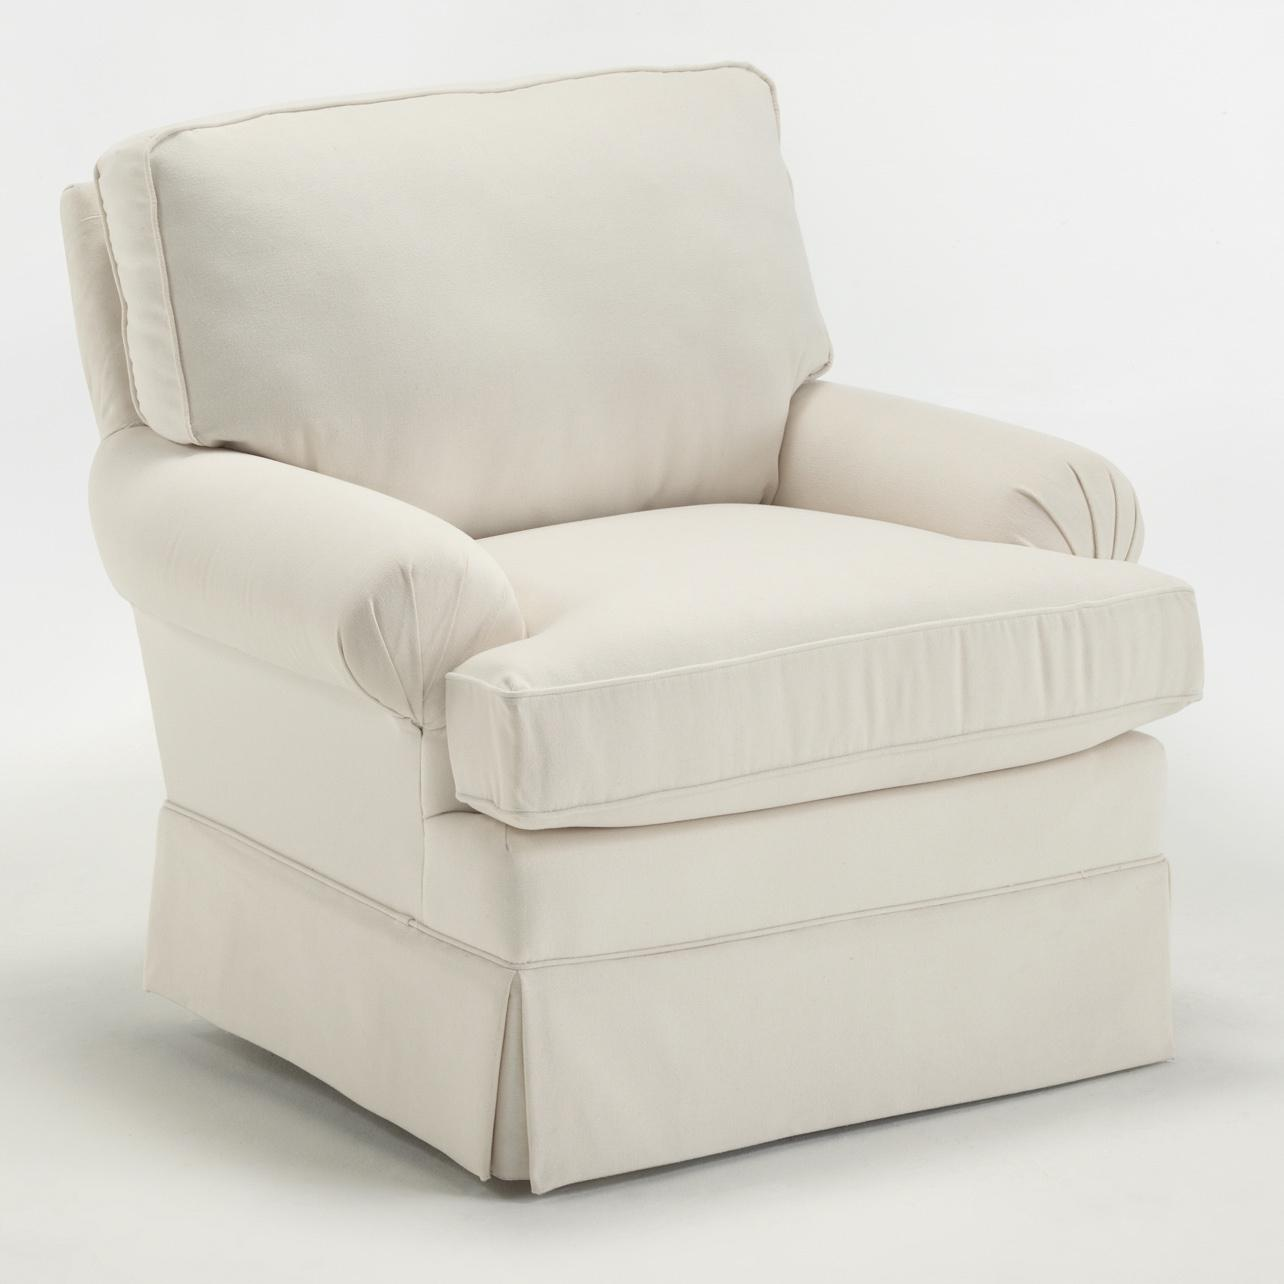 best home furnishings kamilla kamilla swivel glider with skirted base johnny janosik upholstered chairs - Glider Chairs